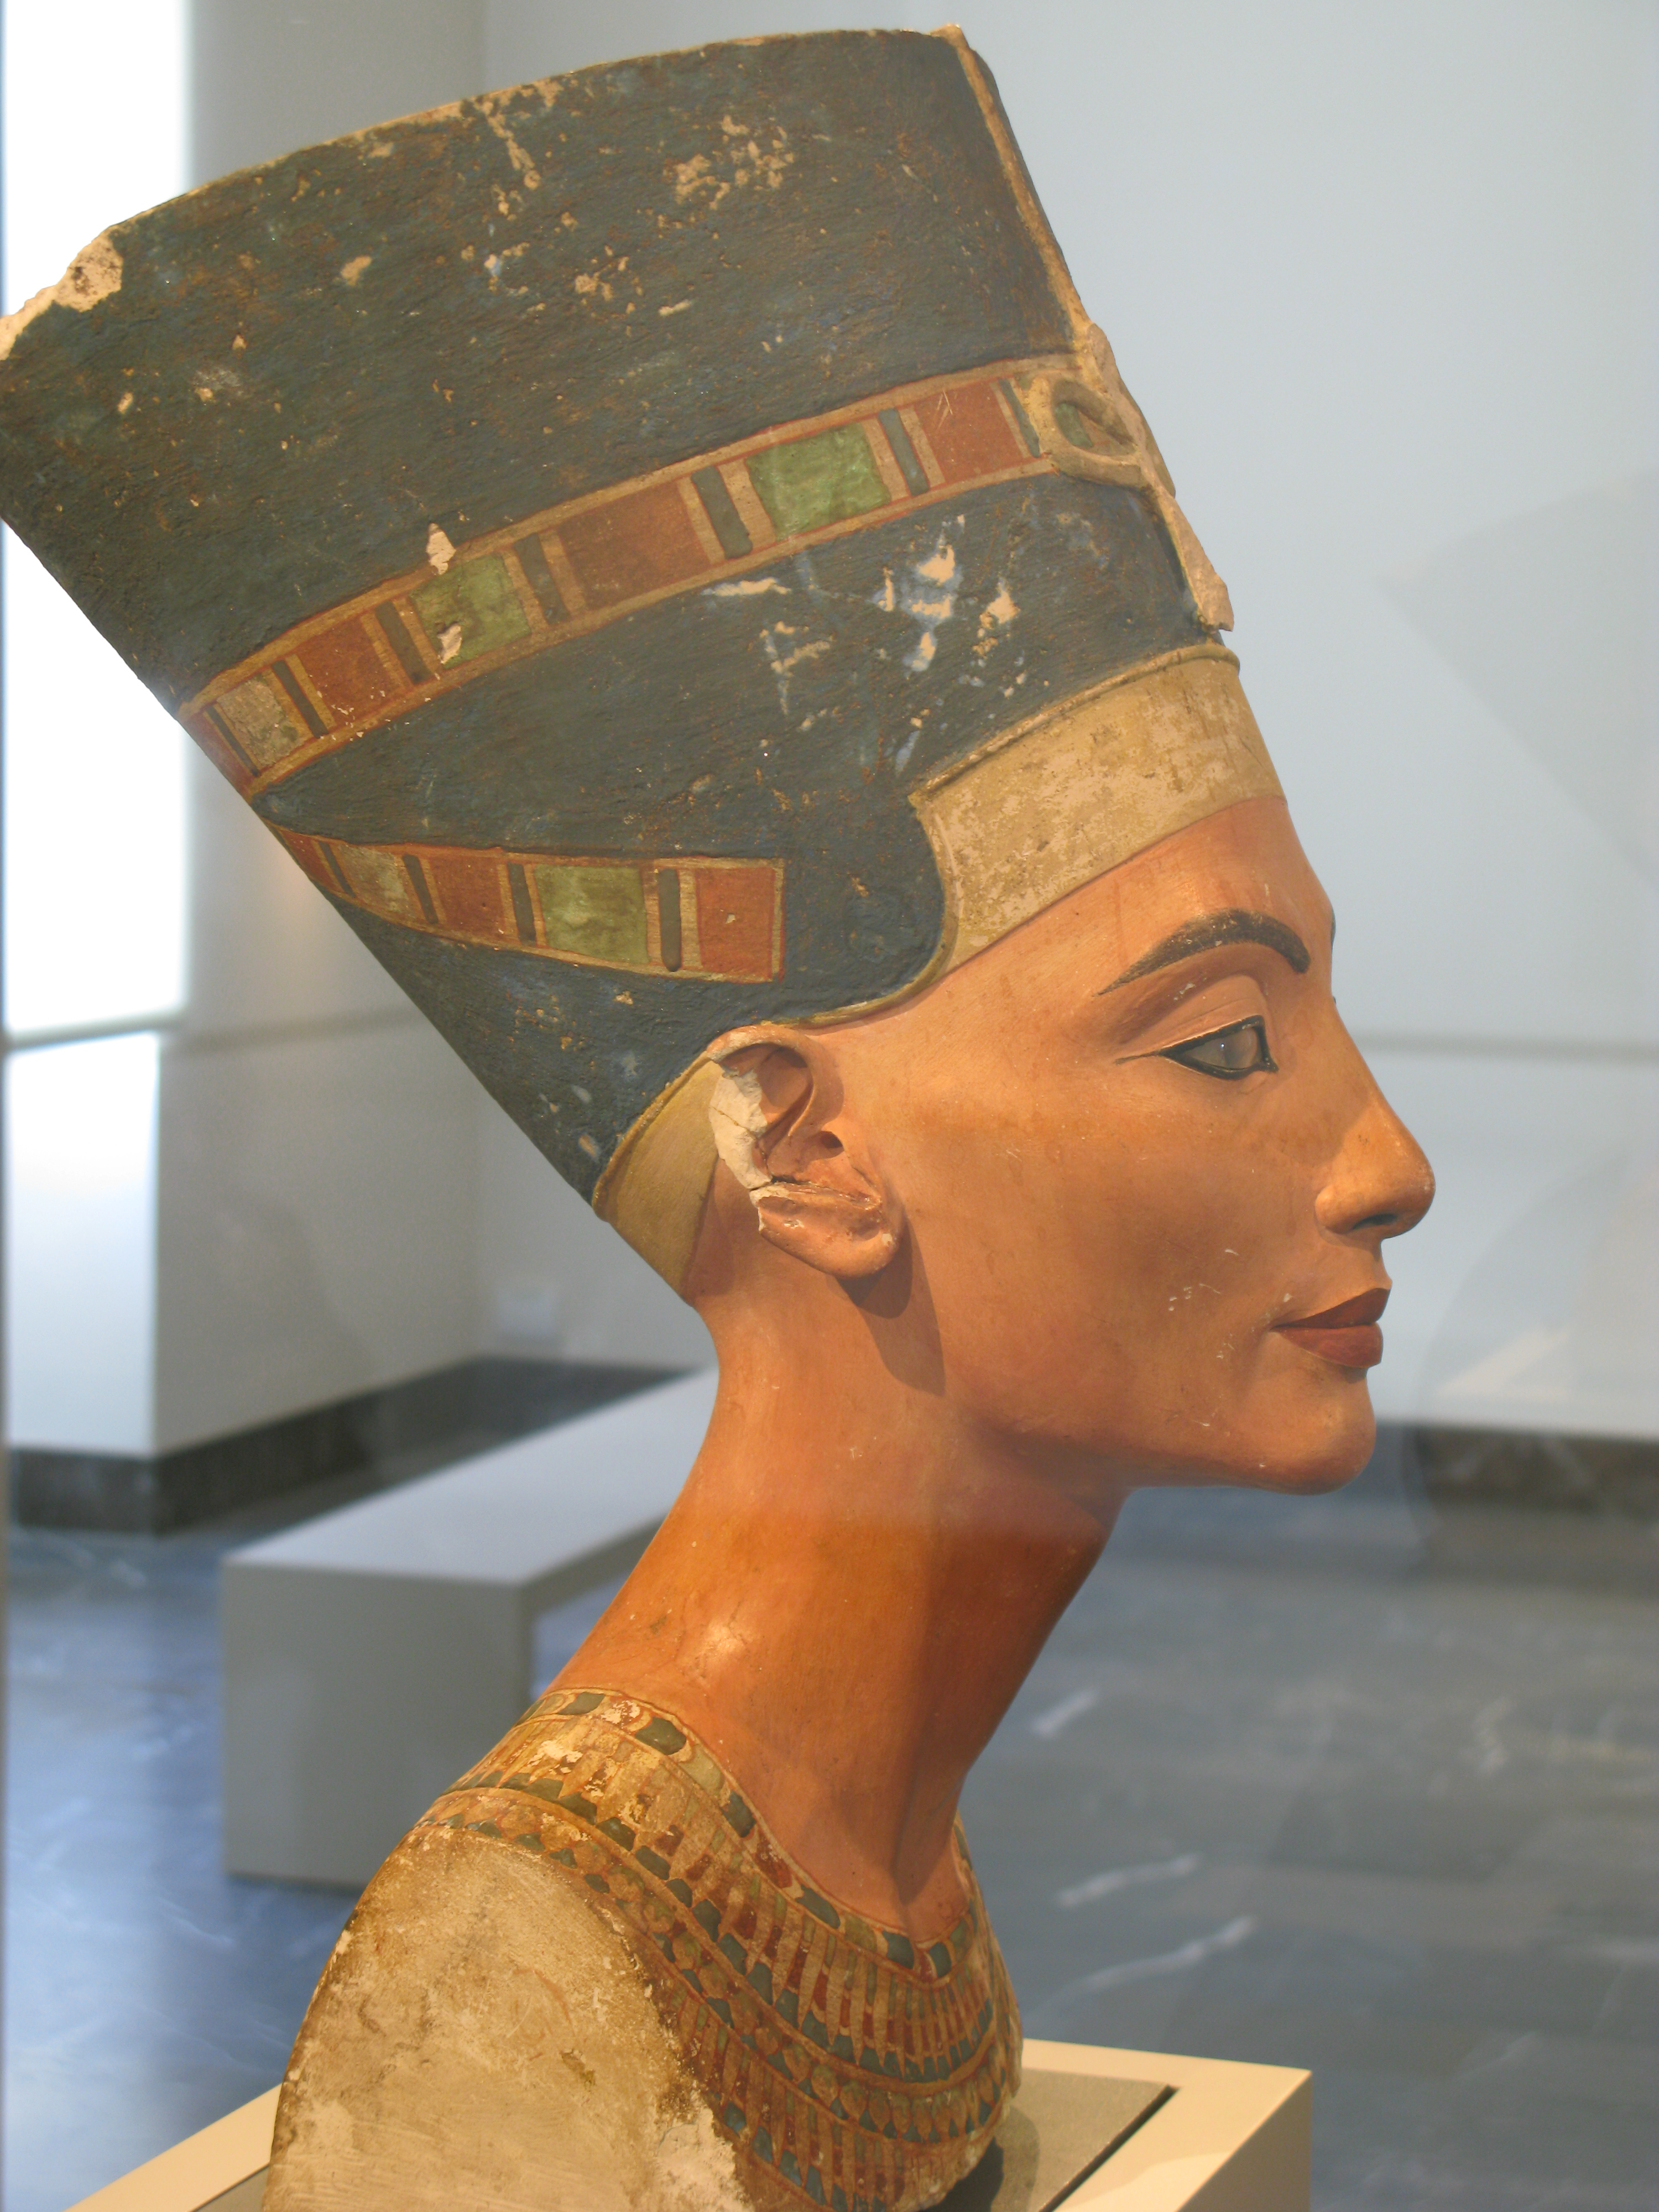 nefertiti-pavillion-tequila-young-pics-galleries-pics-of-nuge-bolivian-chics